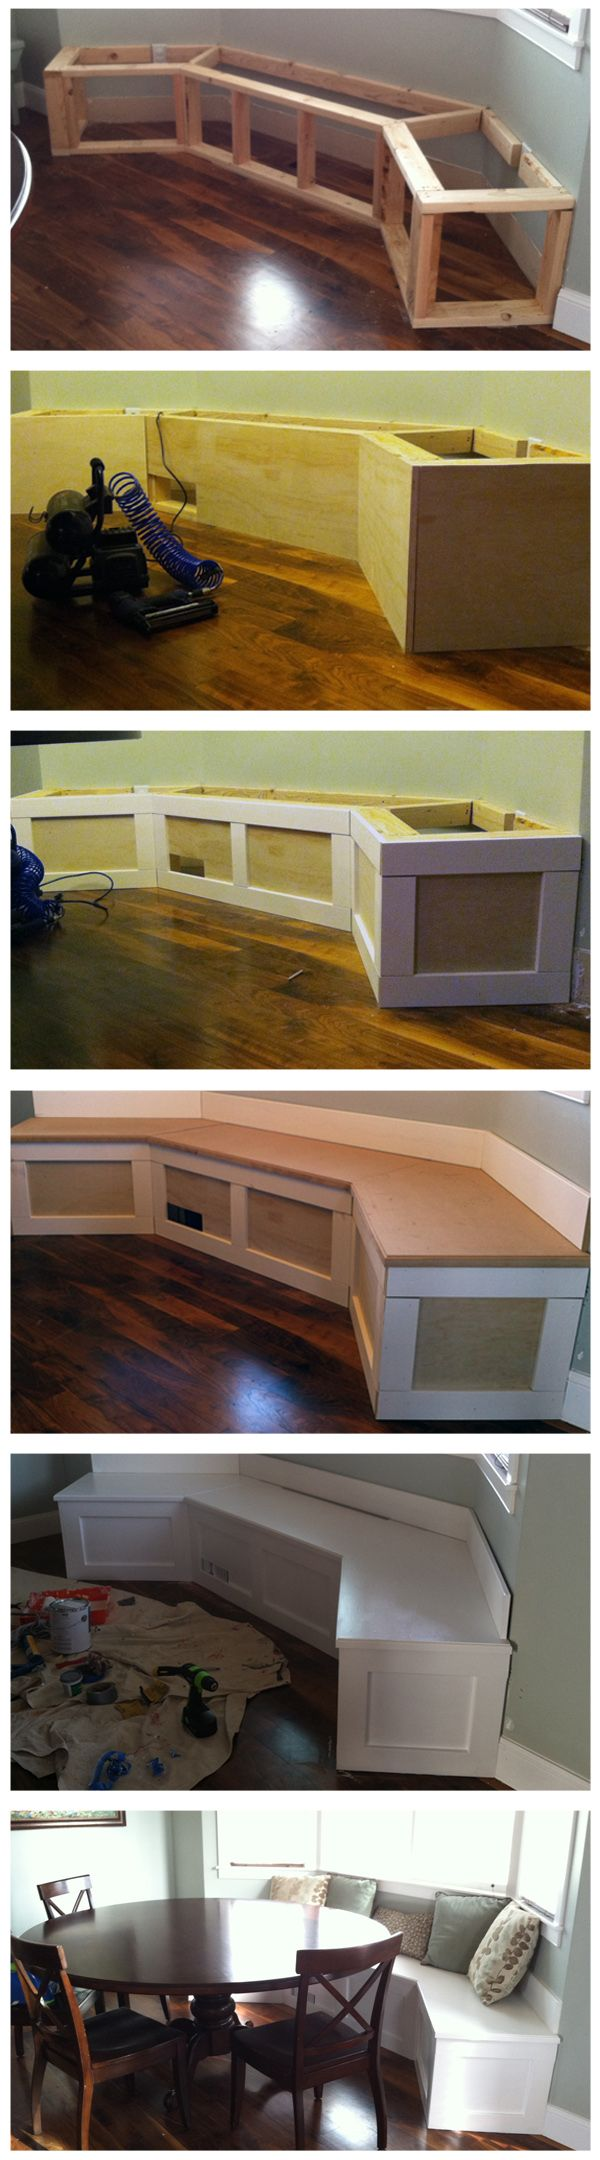 10 creative diy projects for kitchen banquettes tutorials and 10 creative diy projects for kitchen solutioingenieria Gallery